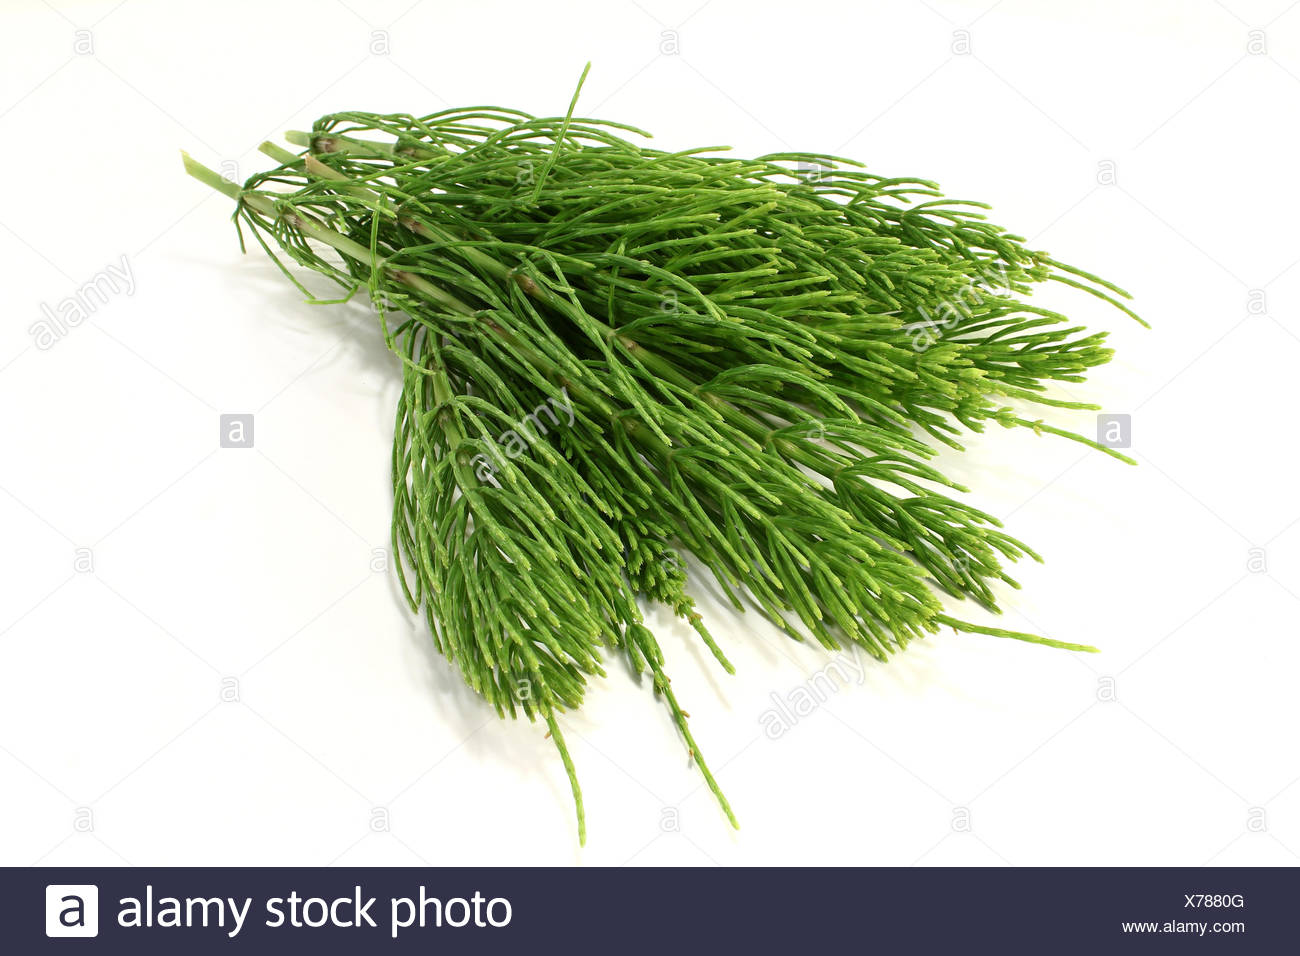 homeopathy horse tail medicinal plant naturopathy homeopathic green agriculture farming material drug anaesthetic addictive - Stock Image